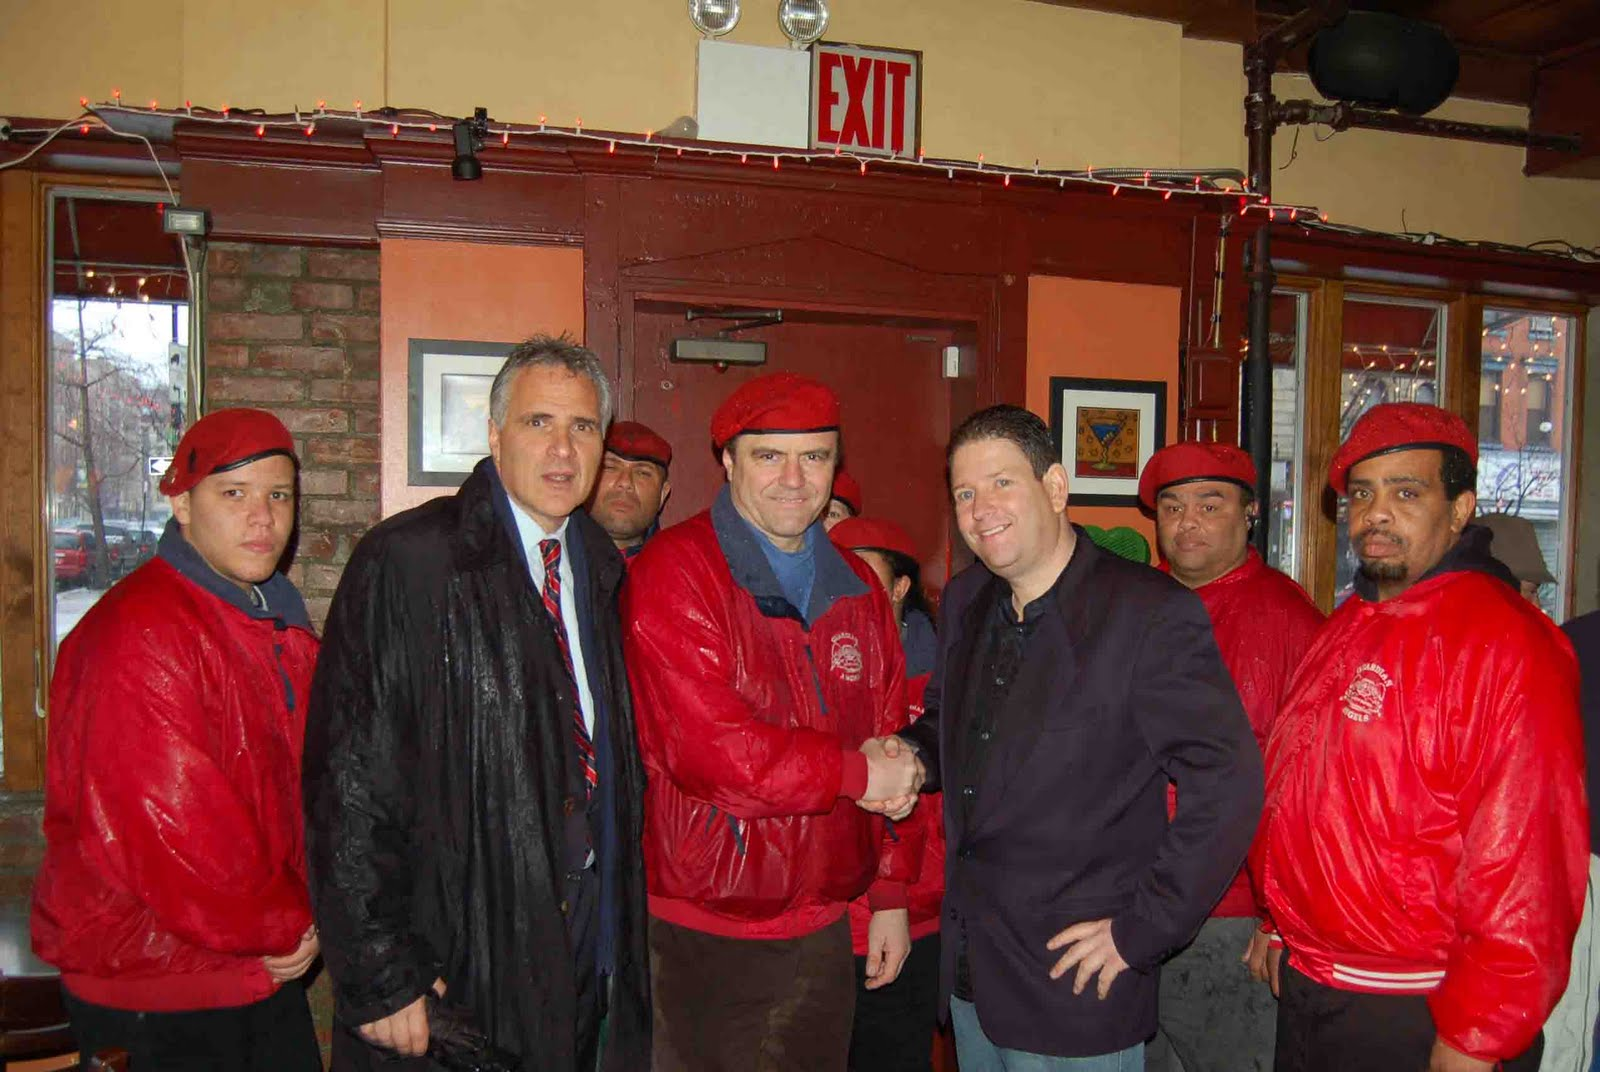 [Kenneth+E.+Mangano+With+Curtis+Sliwa,+Todd+Shapiro+And+The+Guardian+Angels]